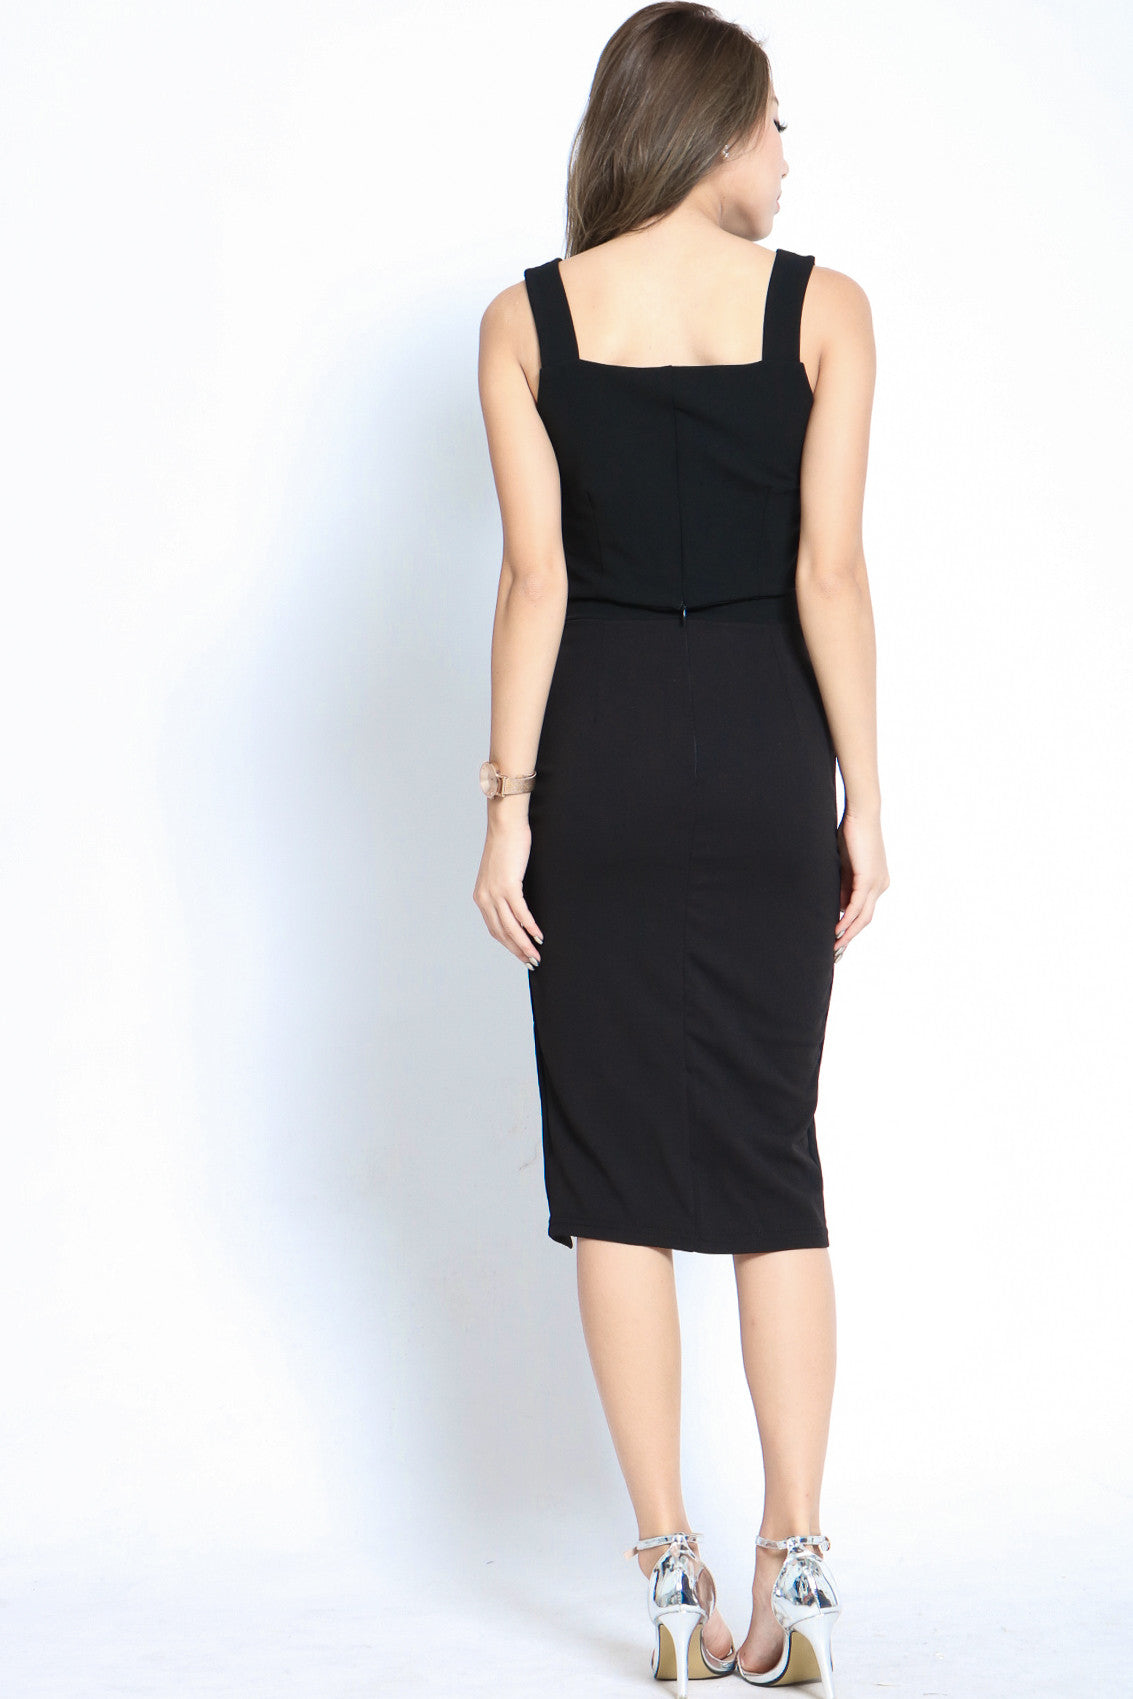 (RESTOCKED) ALLURE SLIT MIDI SKIRT IN BLACK